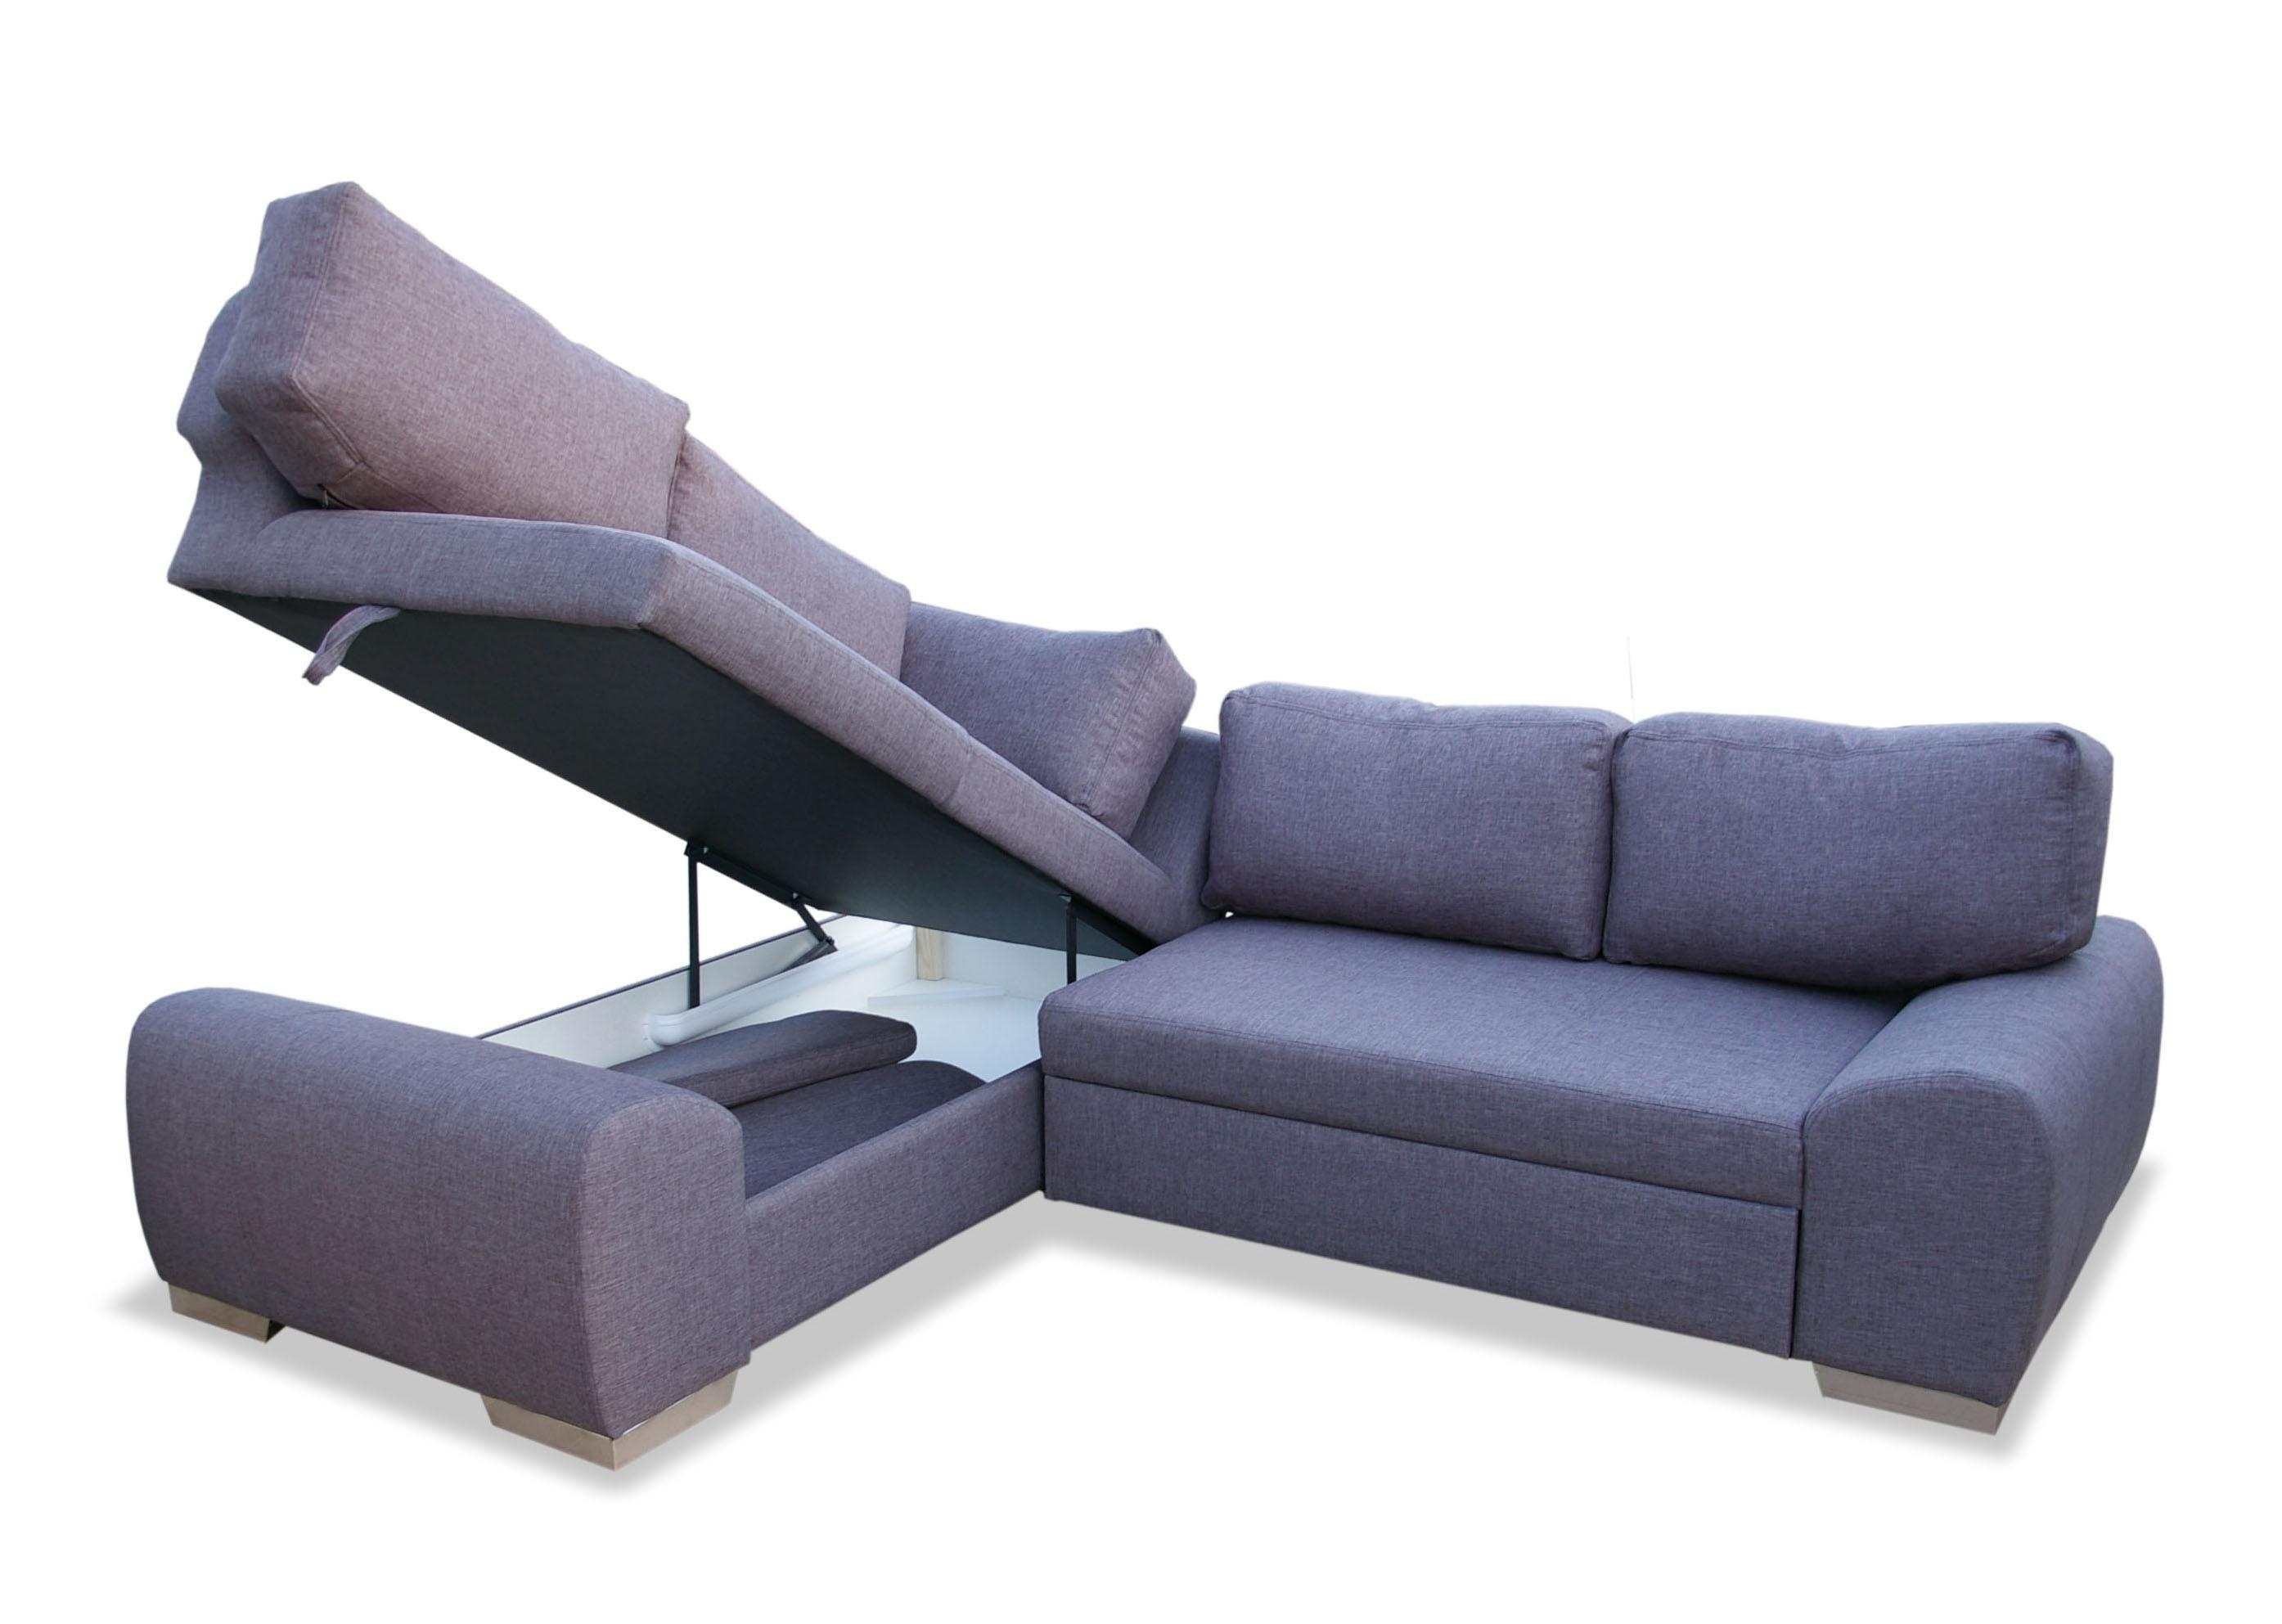 Awesome Strauss Sofa Bed 58 In Minimalist With Strauss Sofa Bed #14749 Intended For Sofas With Beds (Image 1 of 22)